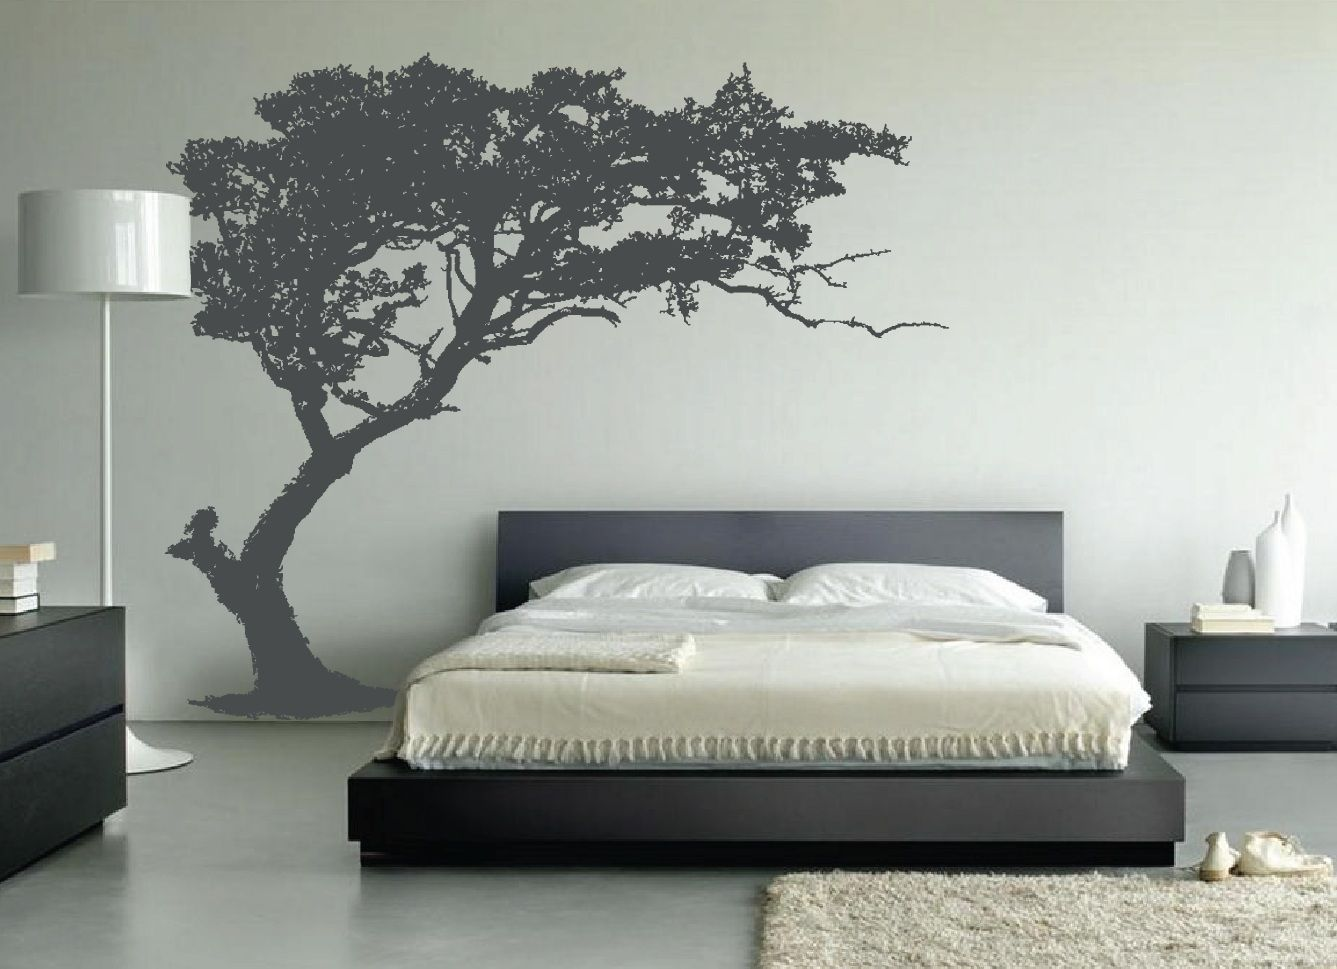 25 fantastic minimalist bedroom ideas | tree wall, minimalist